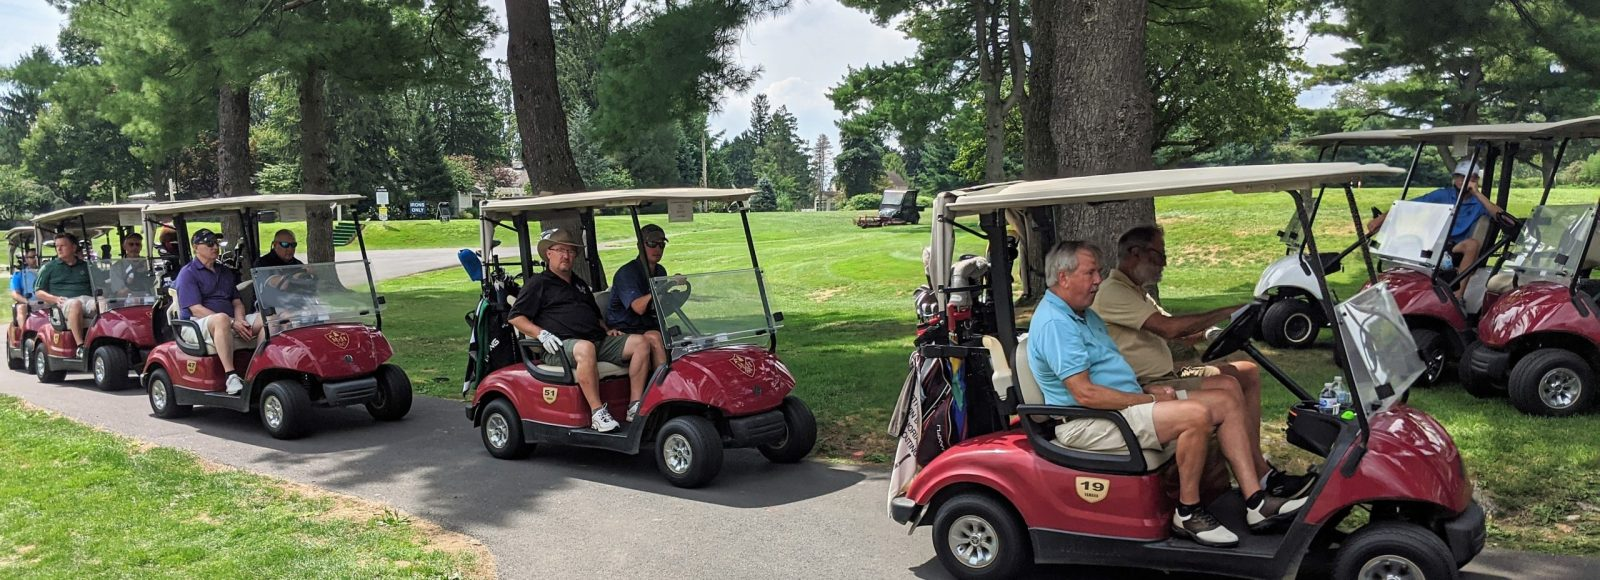 Charity Golf Scramble raises $11,000 in support of Foundation